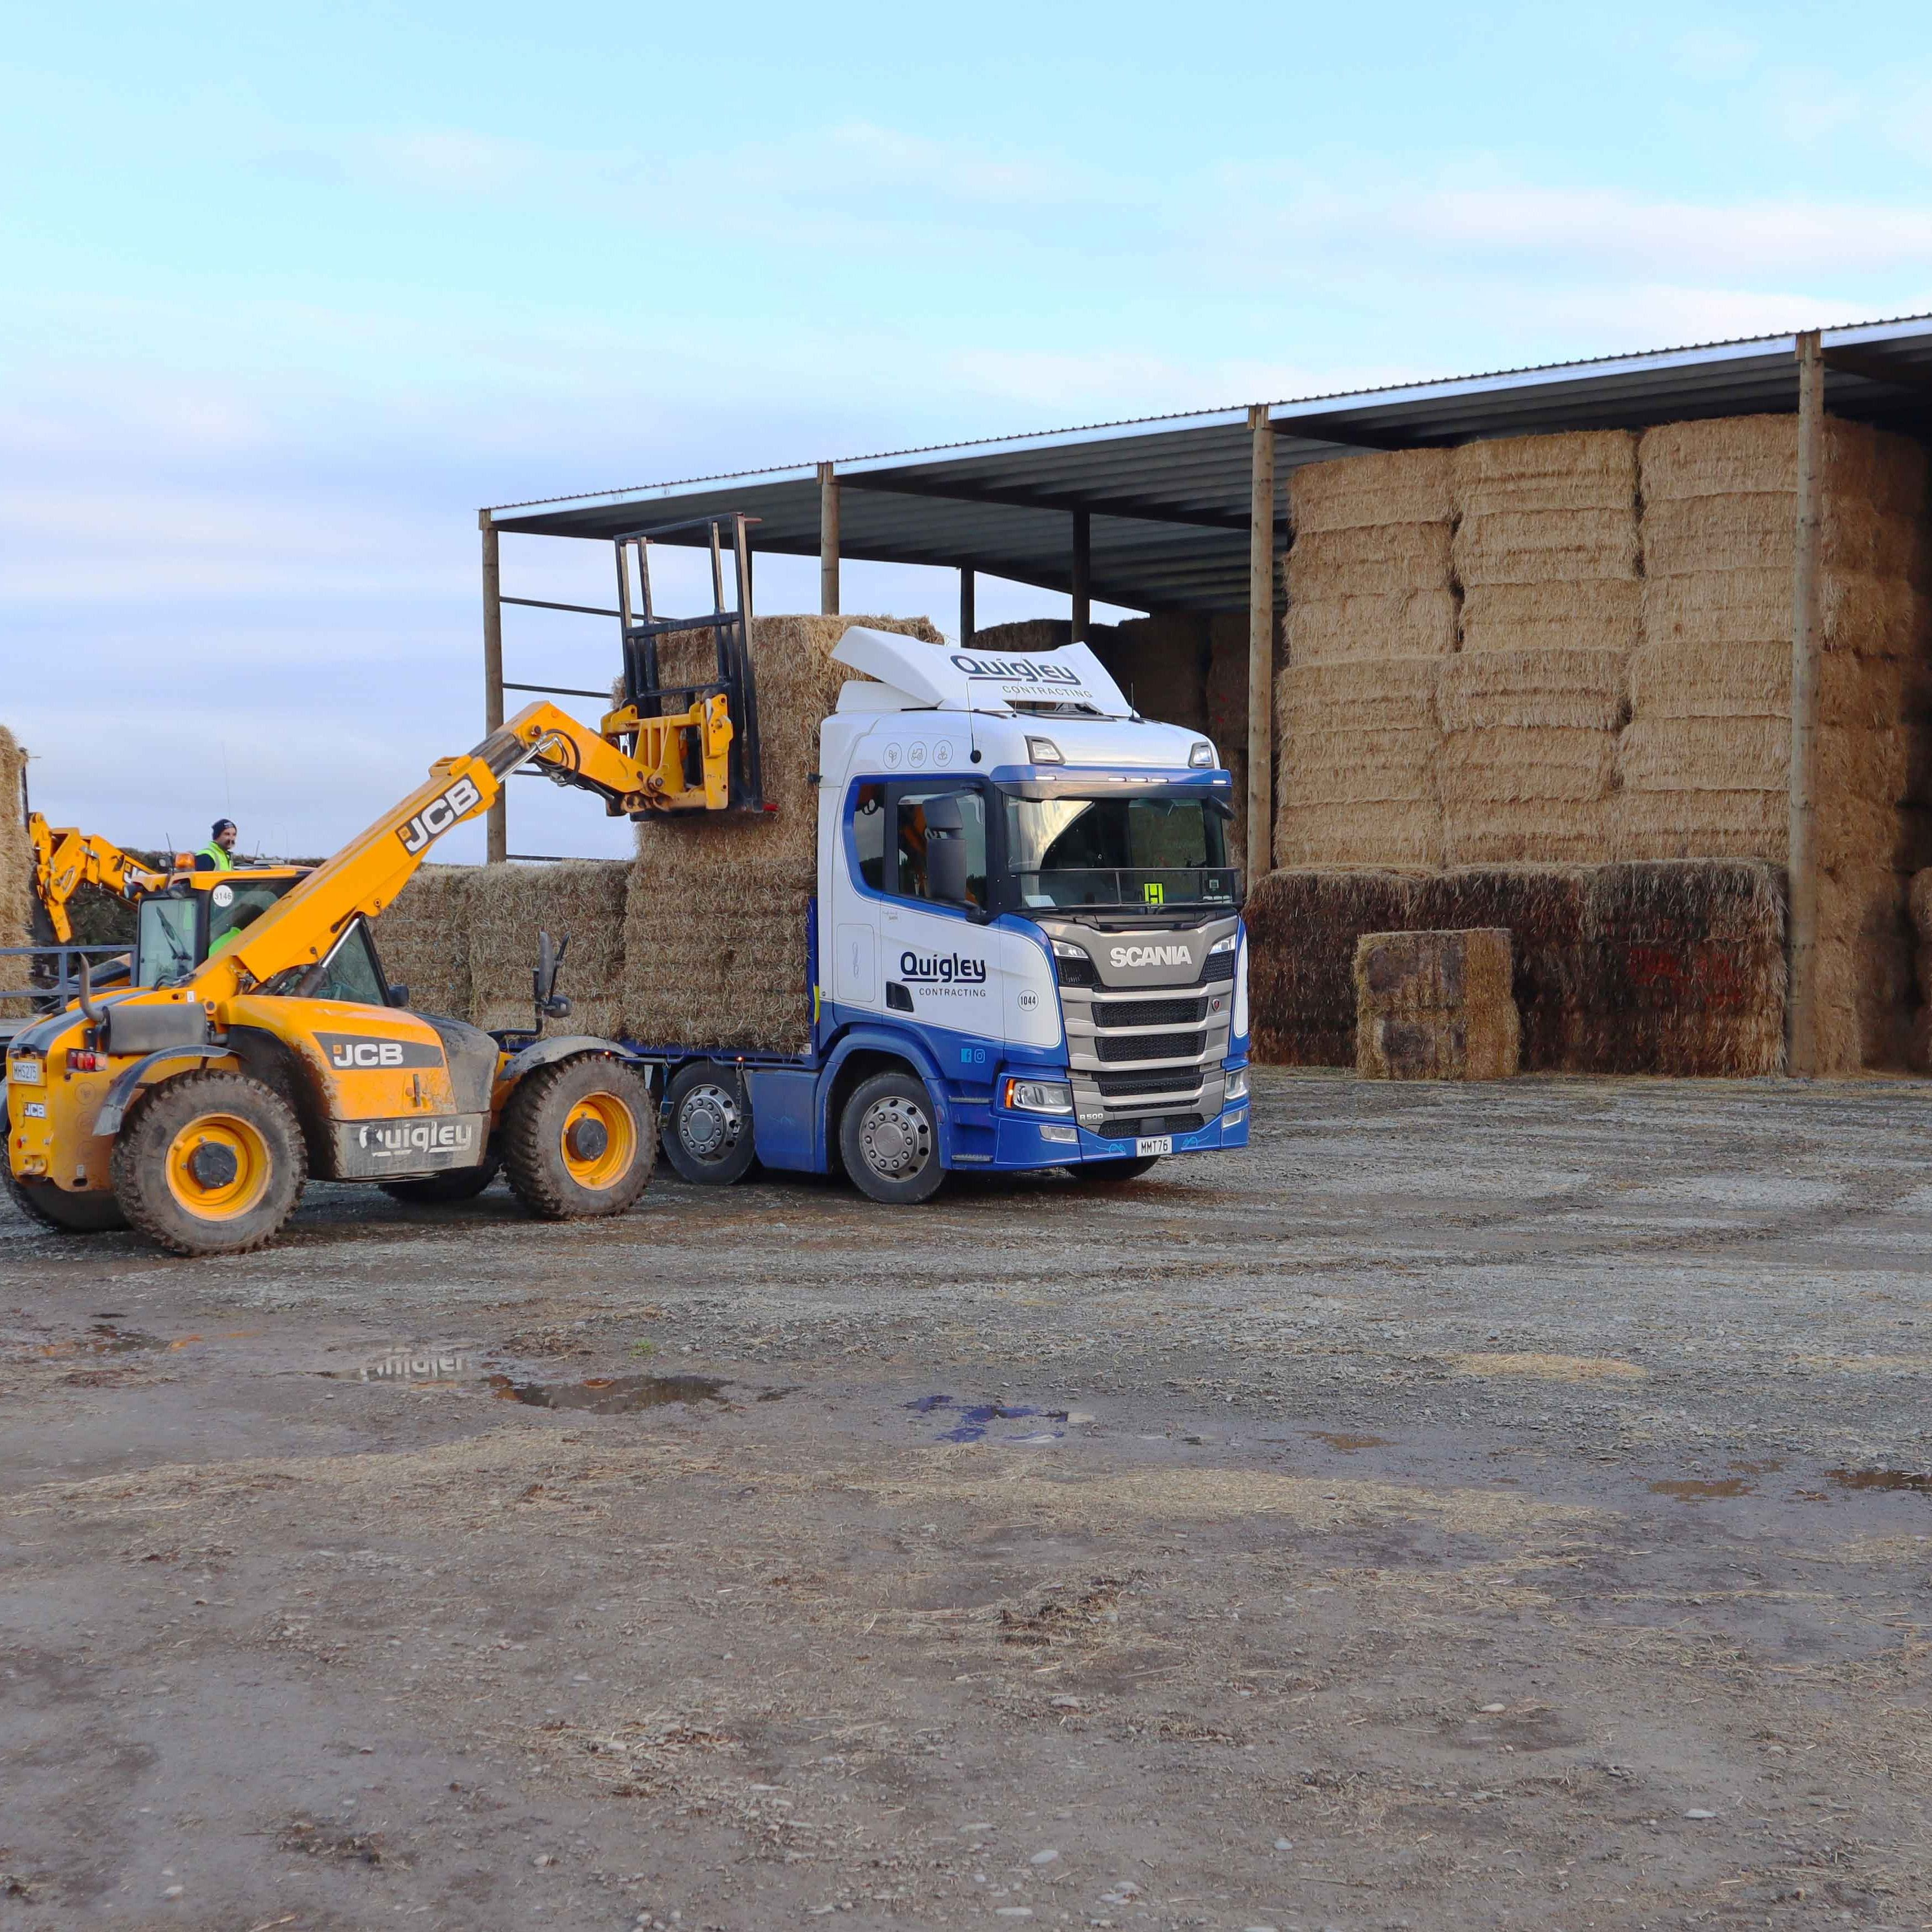 Extra wide bays for storing implement equipment